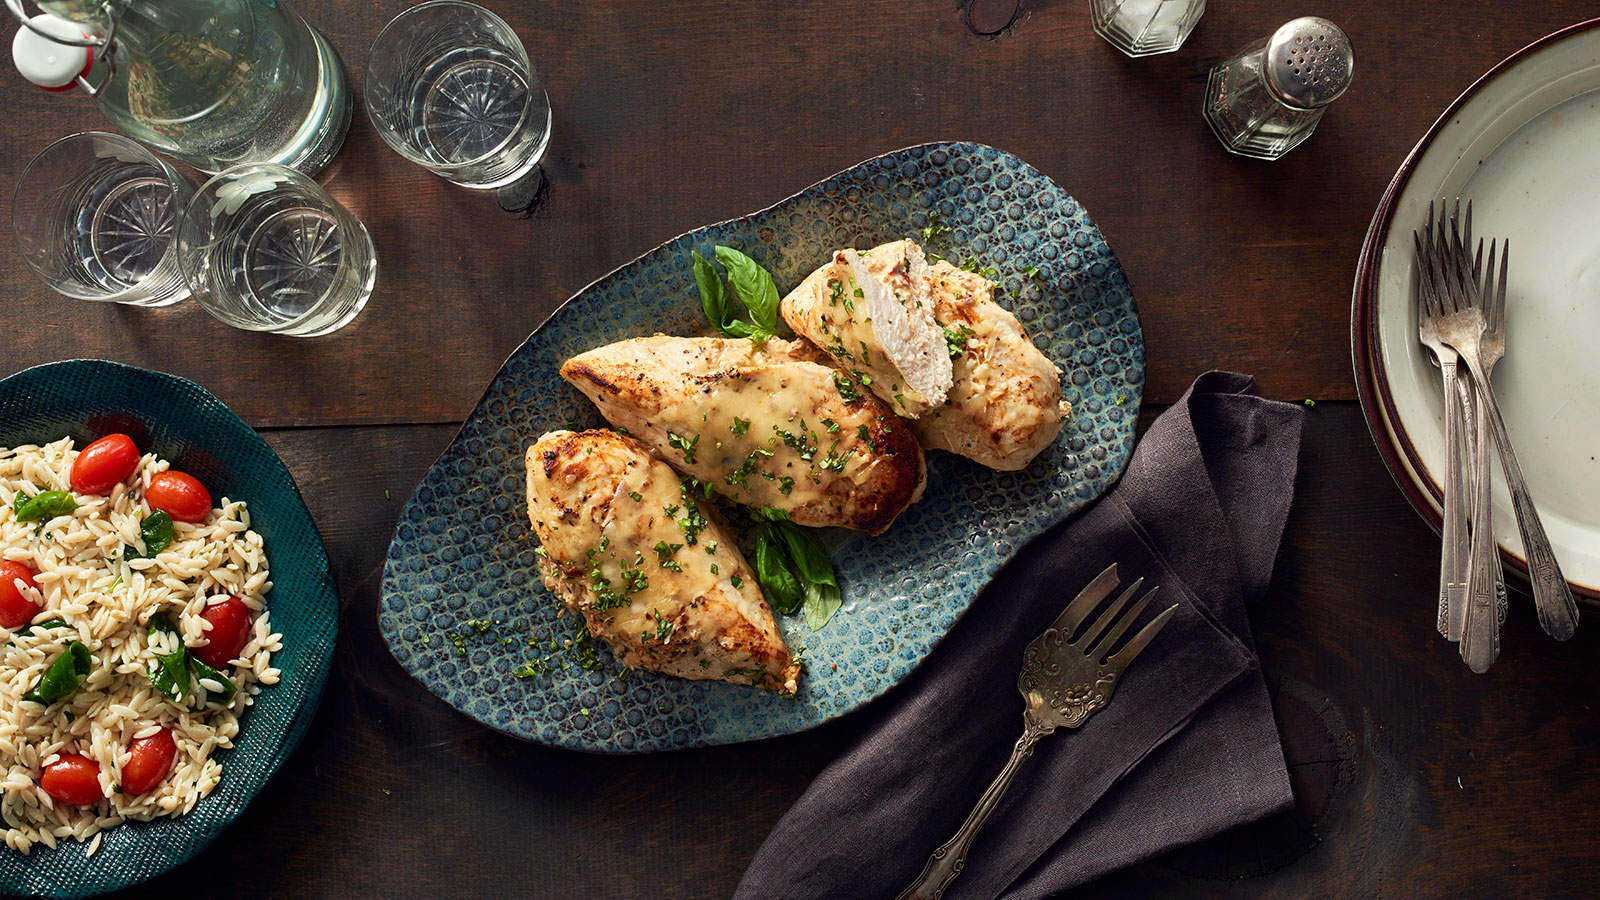 Chicken Breasts Stuffed with Cheese, Basil, and Sundried Tomato